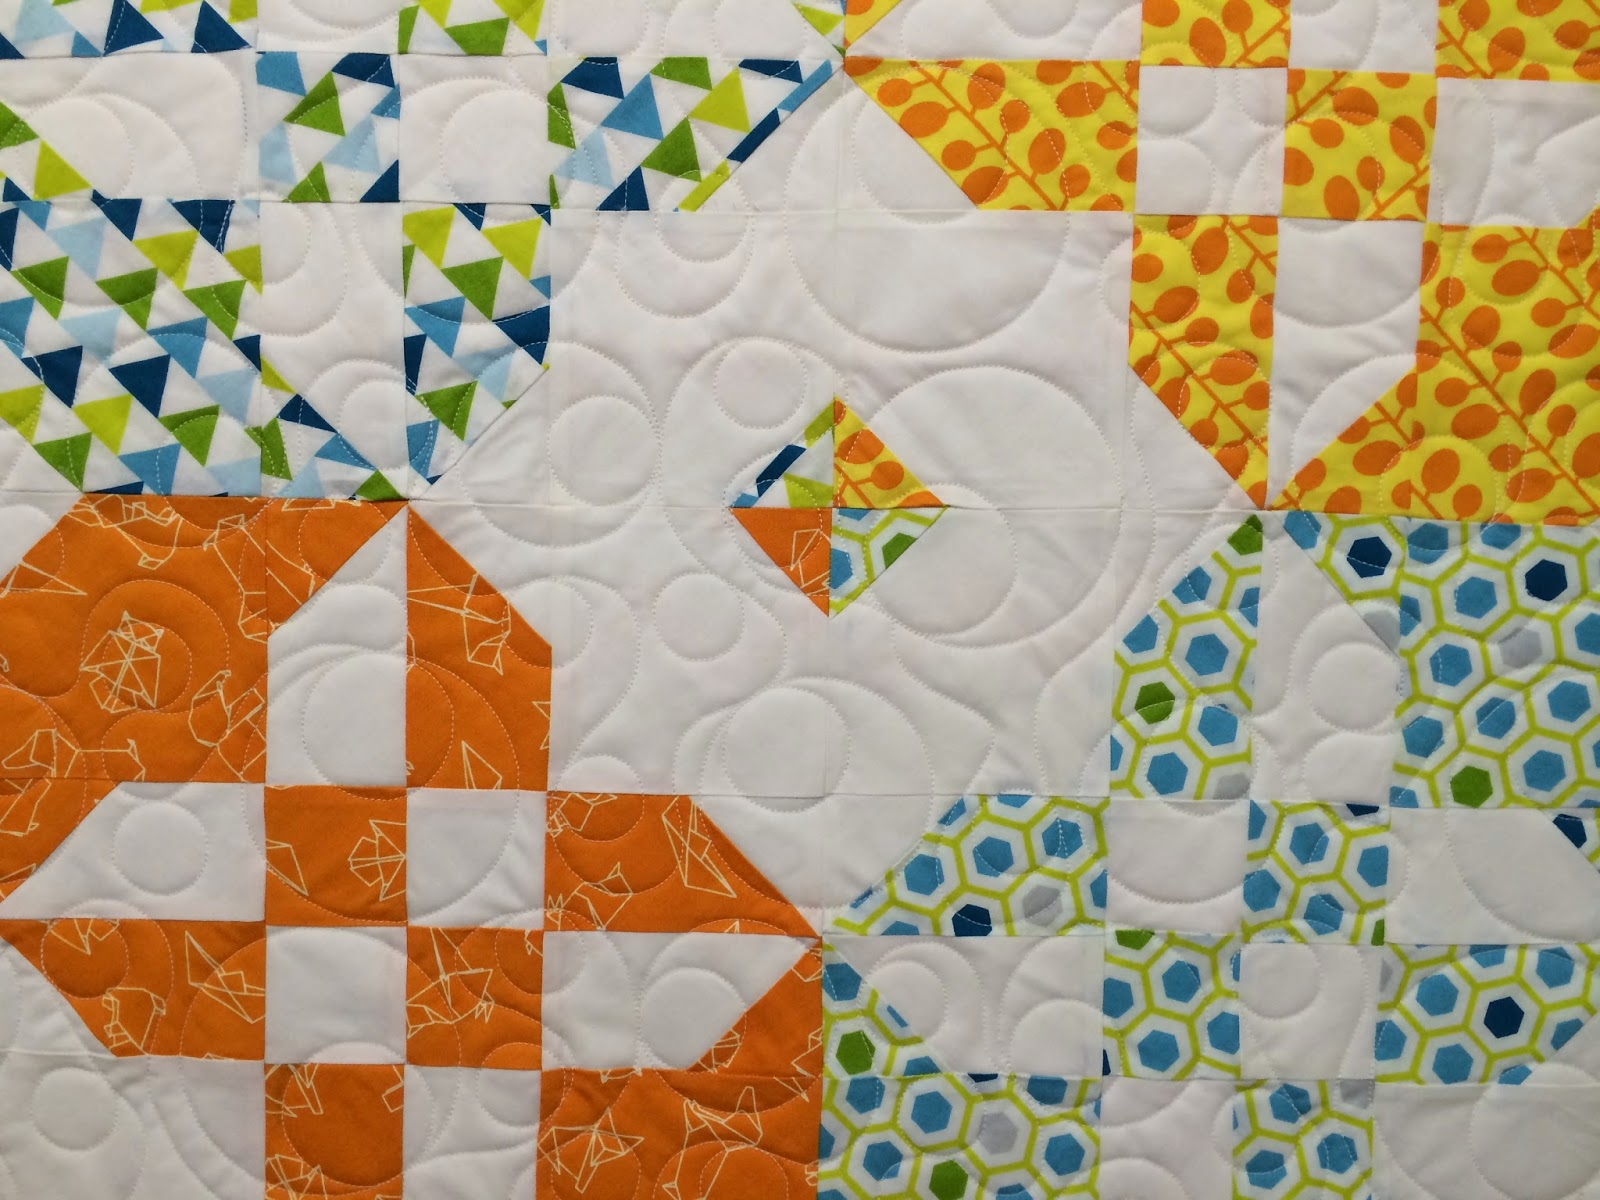 Mary Derryberry's Disappearing Hourglass Quilt